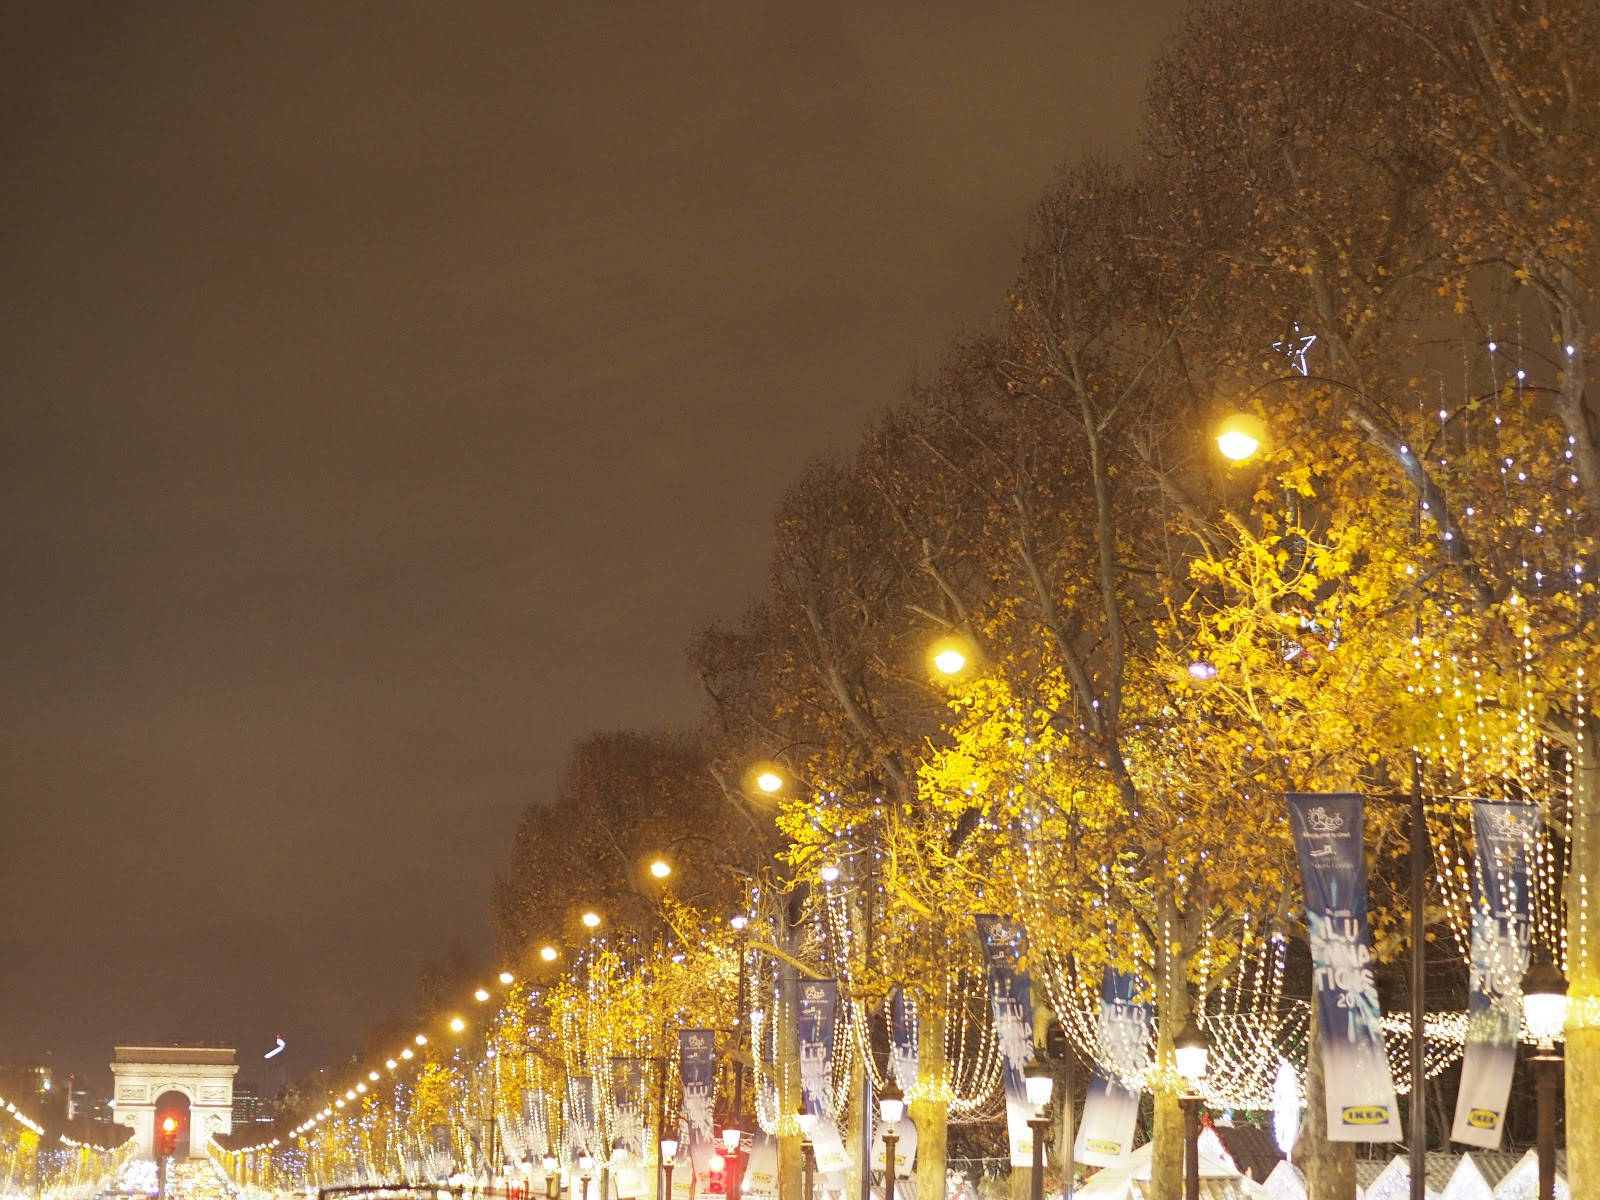 Paris Christmas Market at Night